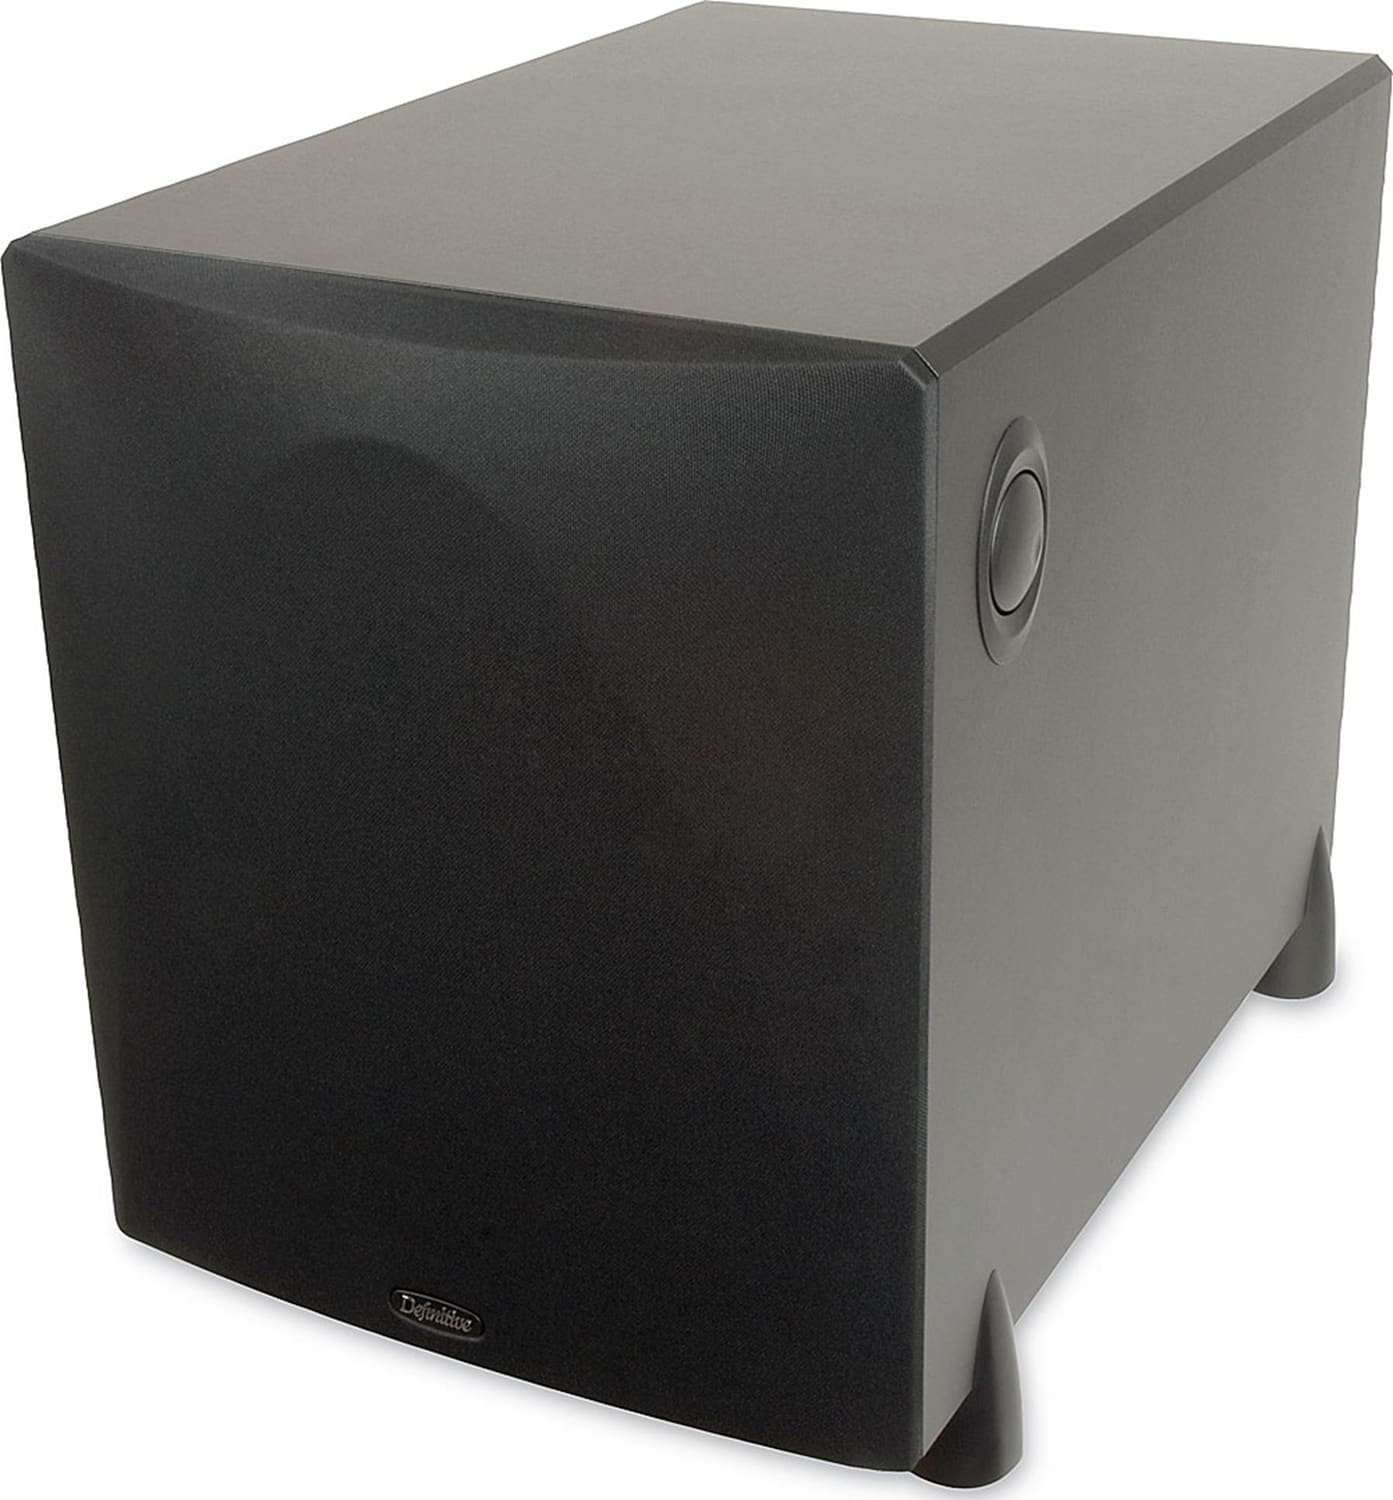 """DEFINITIVE TECHNOLOGY PROSUB 1000 10"""" 750w High-Output Subwoofer Black NEW 